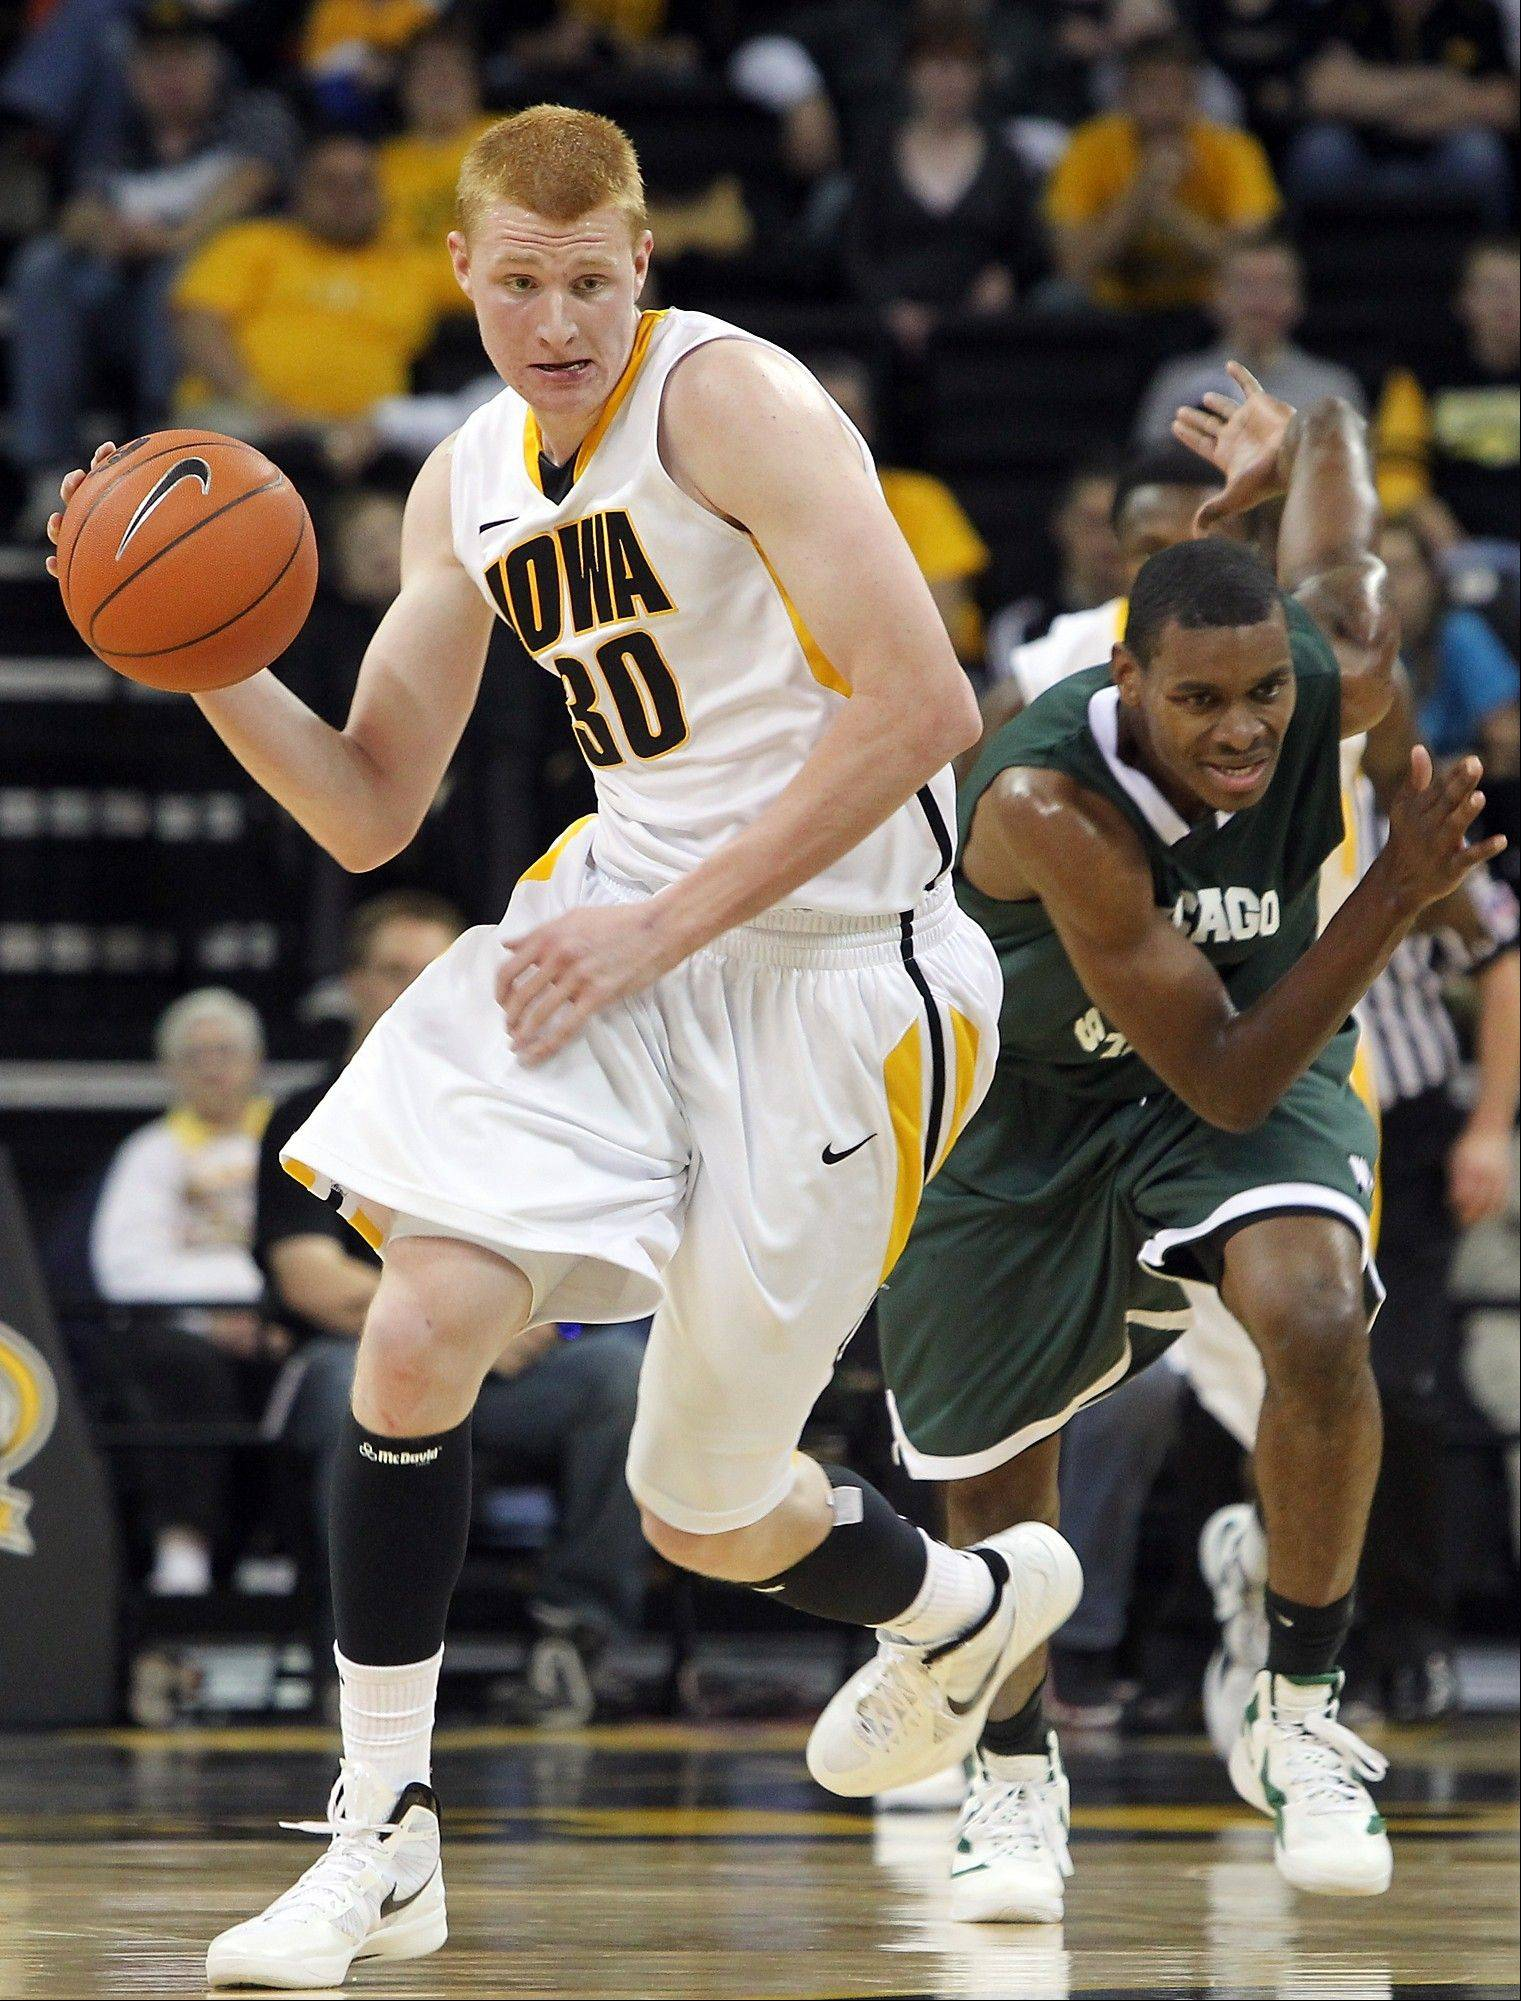 Iowa's Aaron White brings the ball down the court after getting a steal from Chicago State's D'Jari Nelson during a Nov. 11, 2011, game in Iowa City. White, a sophomore forward, was one of the Big Ten's biggest surprises last season.